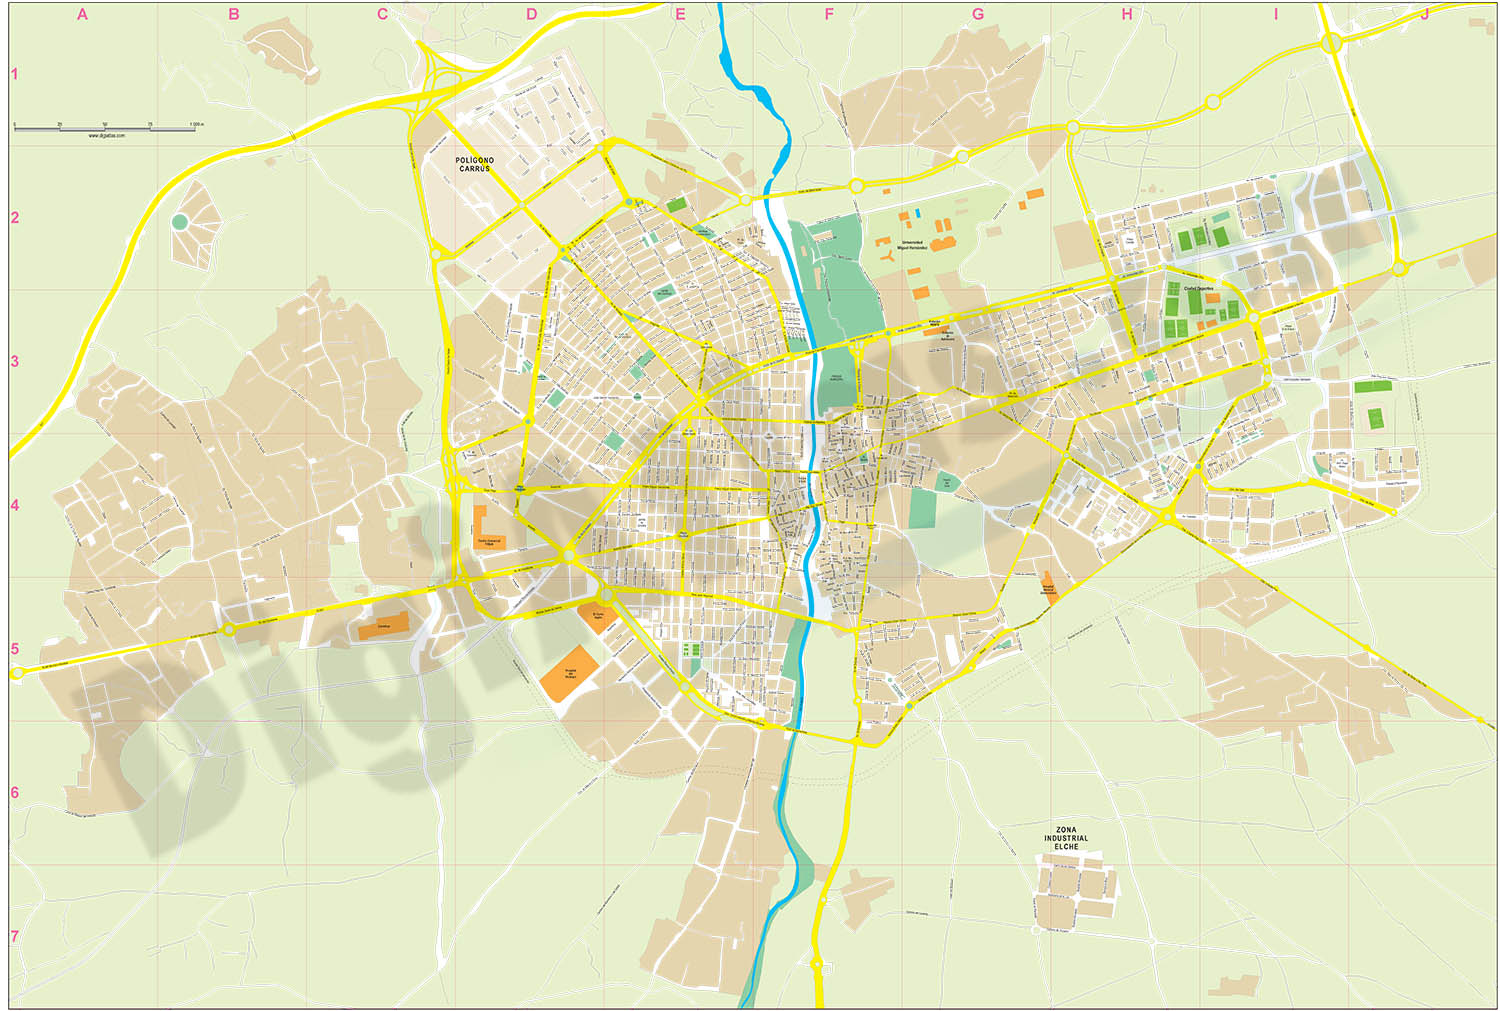 Elche (province of Alicante) city map